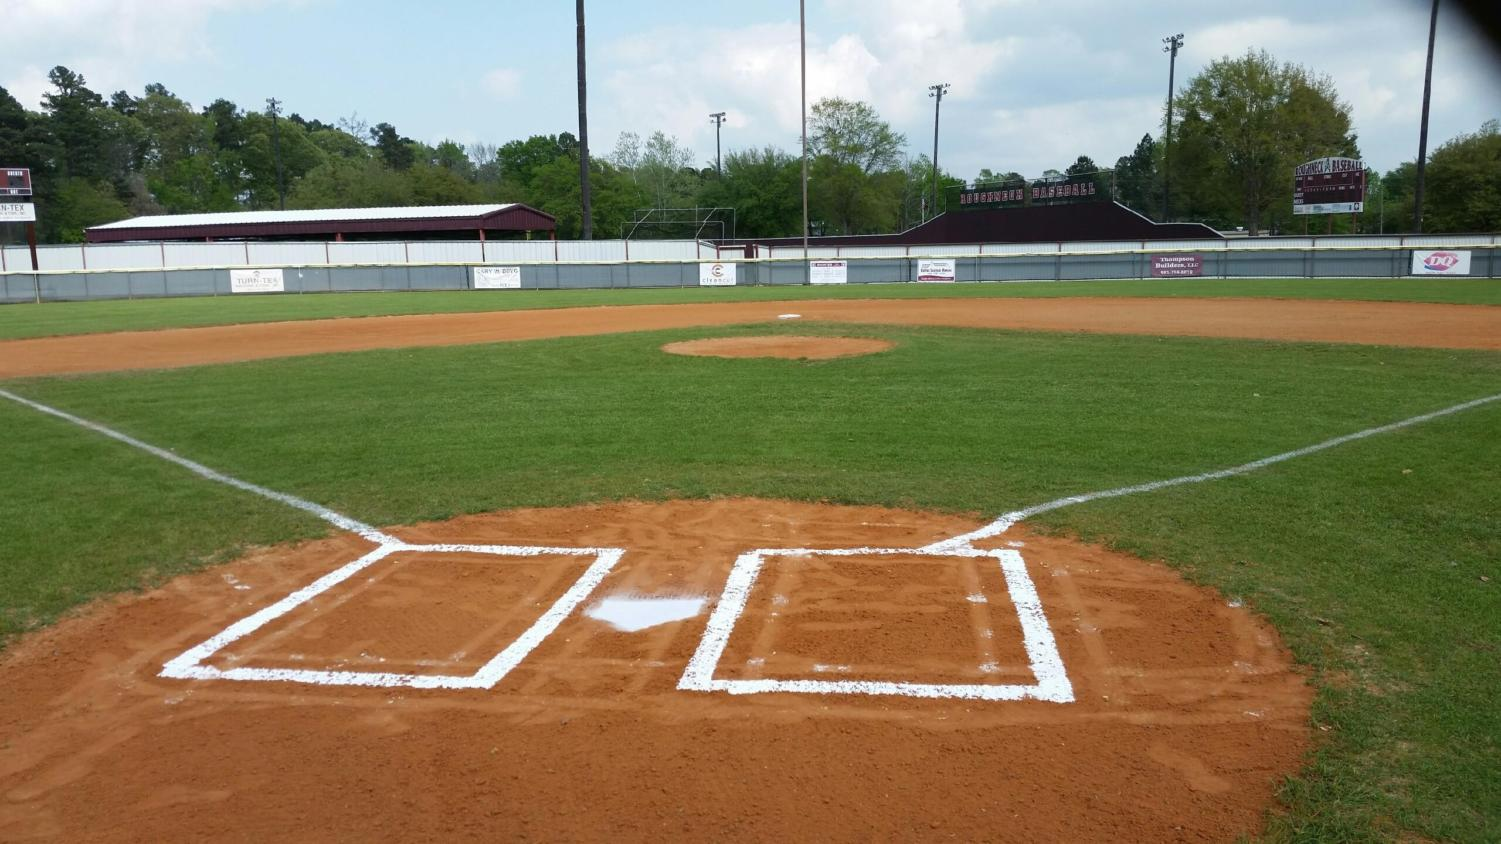 The WSHS spring baseball season is just beginning and the players are looking forward to a great season.